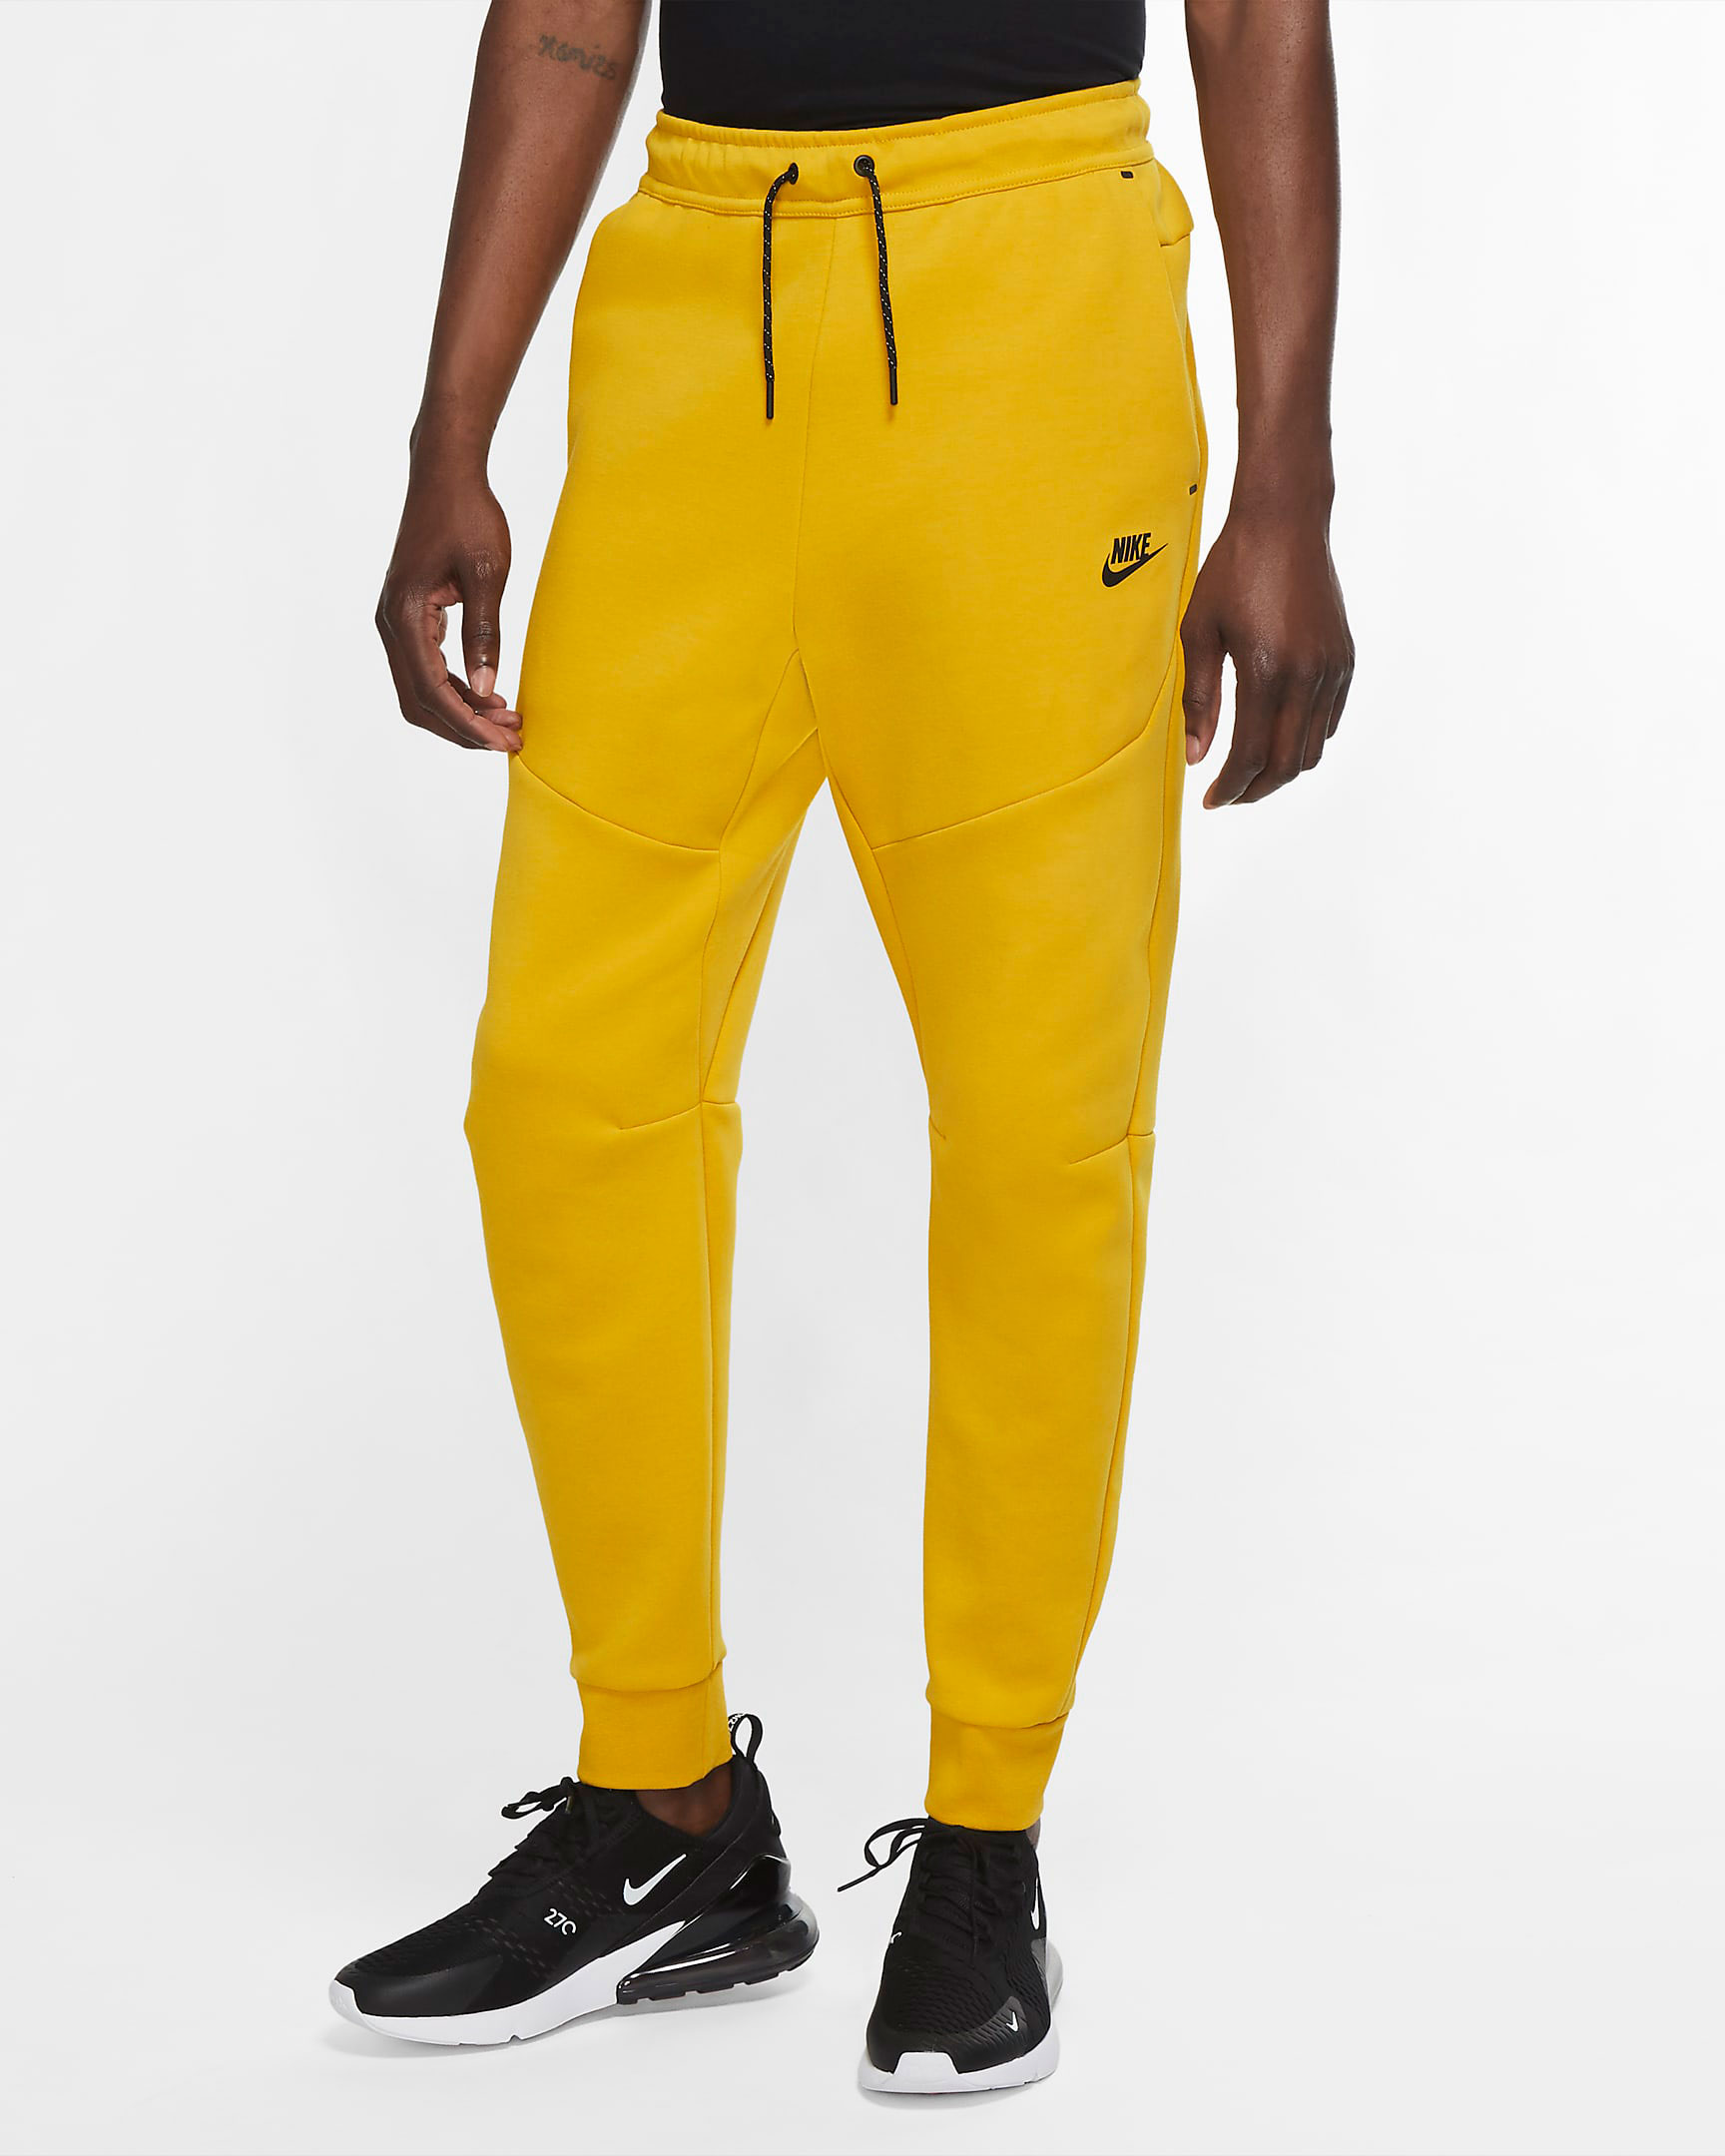 nike-tech-fleece-pants-yellow-sulfur-1